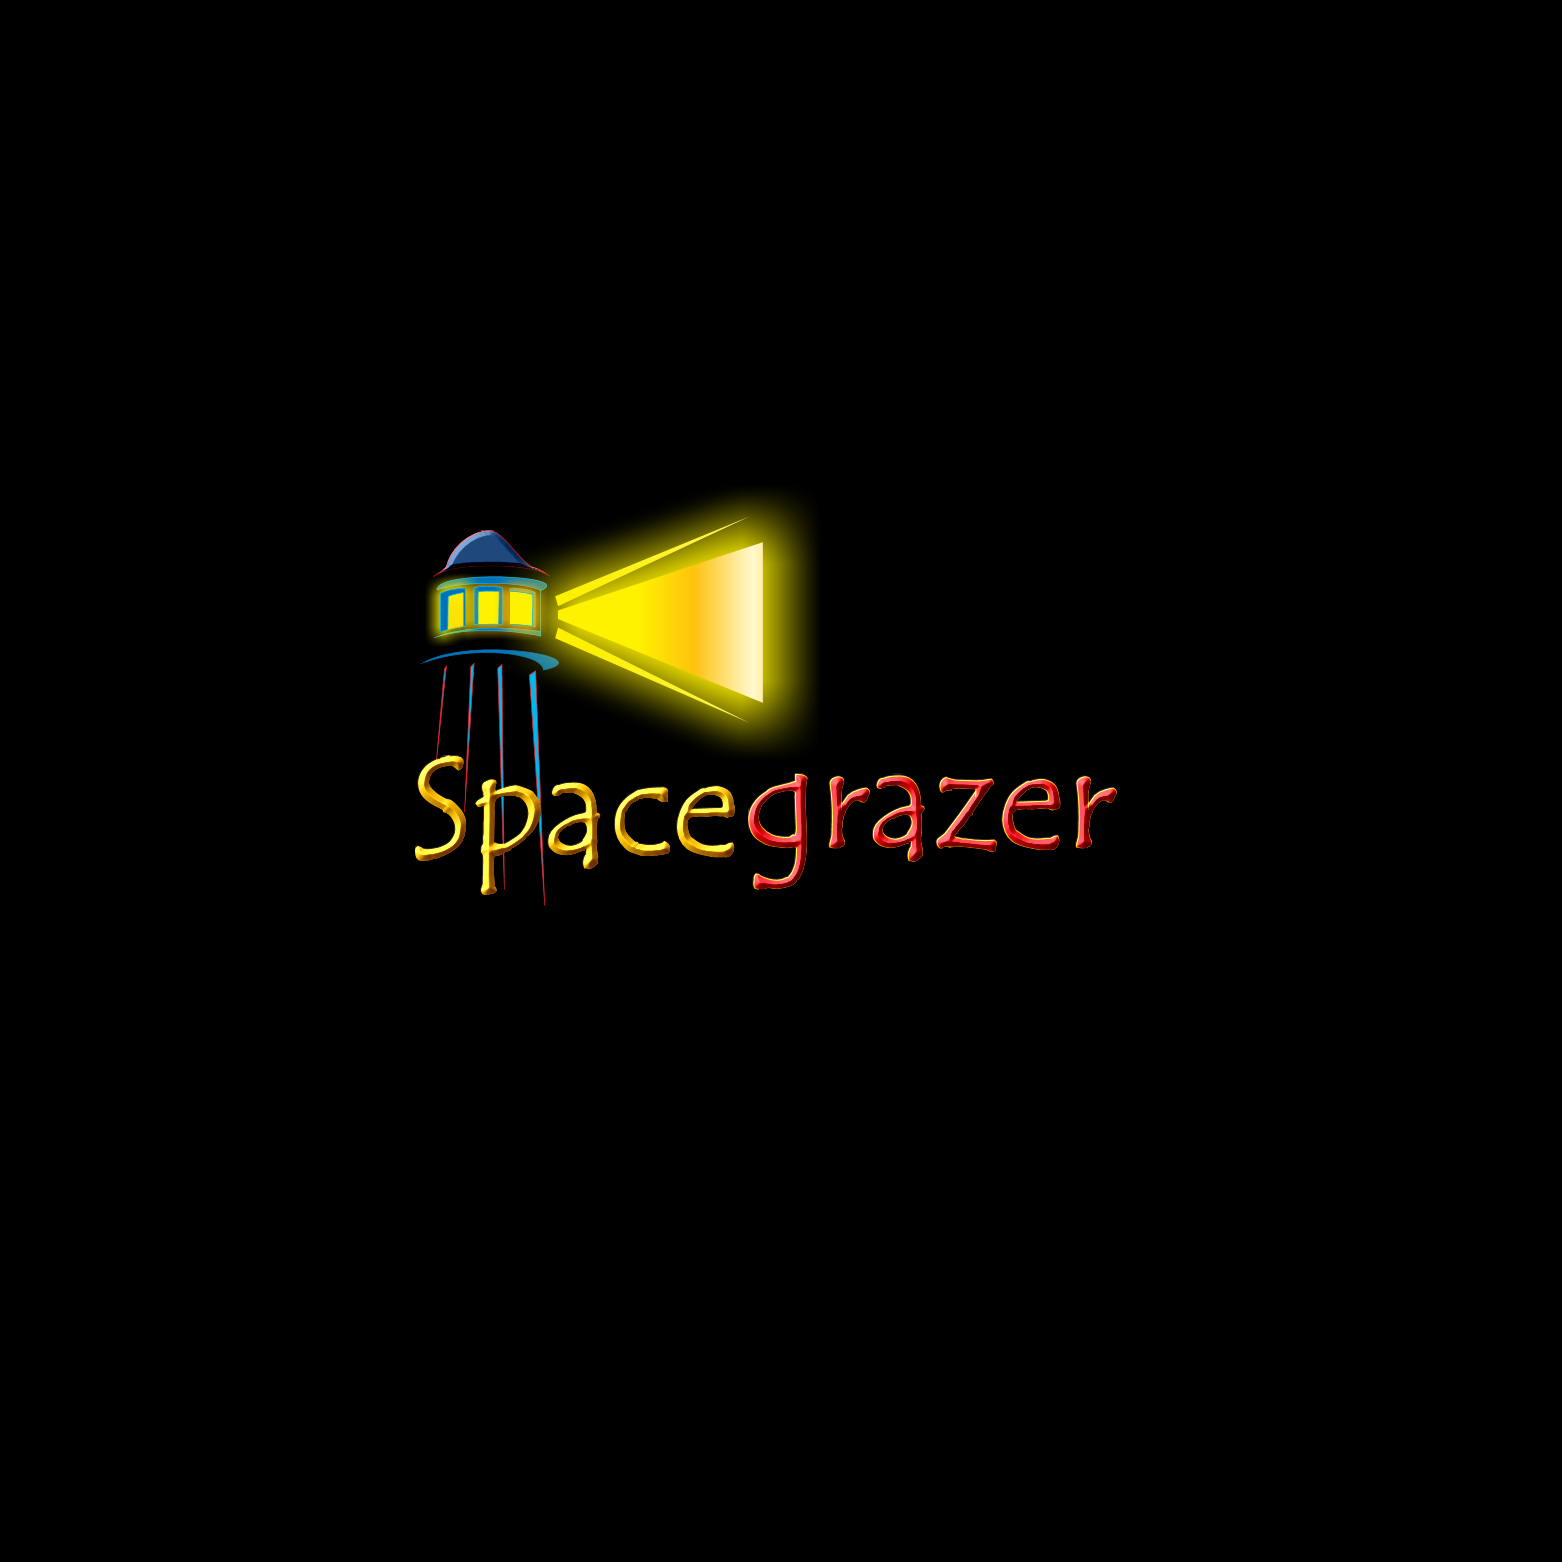 Logo Design by Steven Fitzpatrick - Entry No. 34 in the Logo Design Contest Fun Logo Design for Spacegrazer.